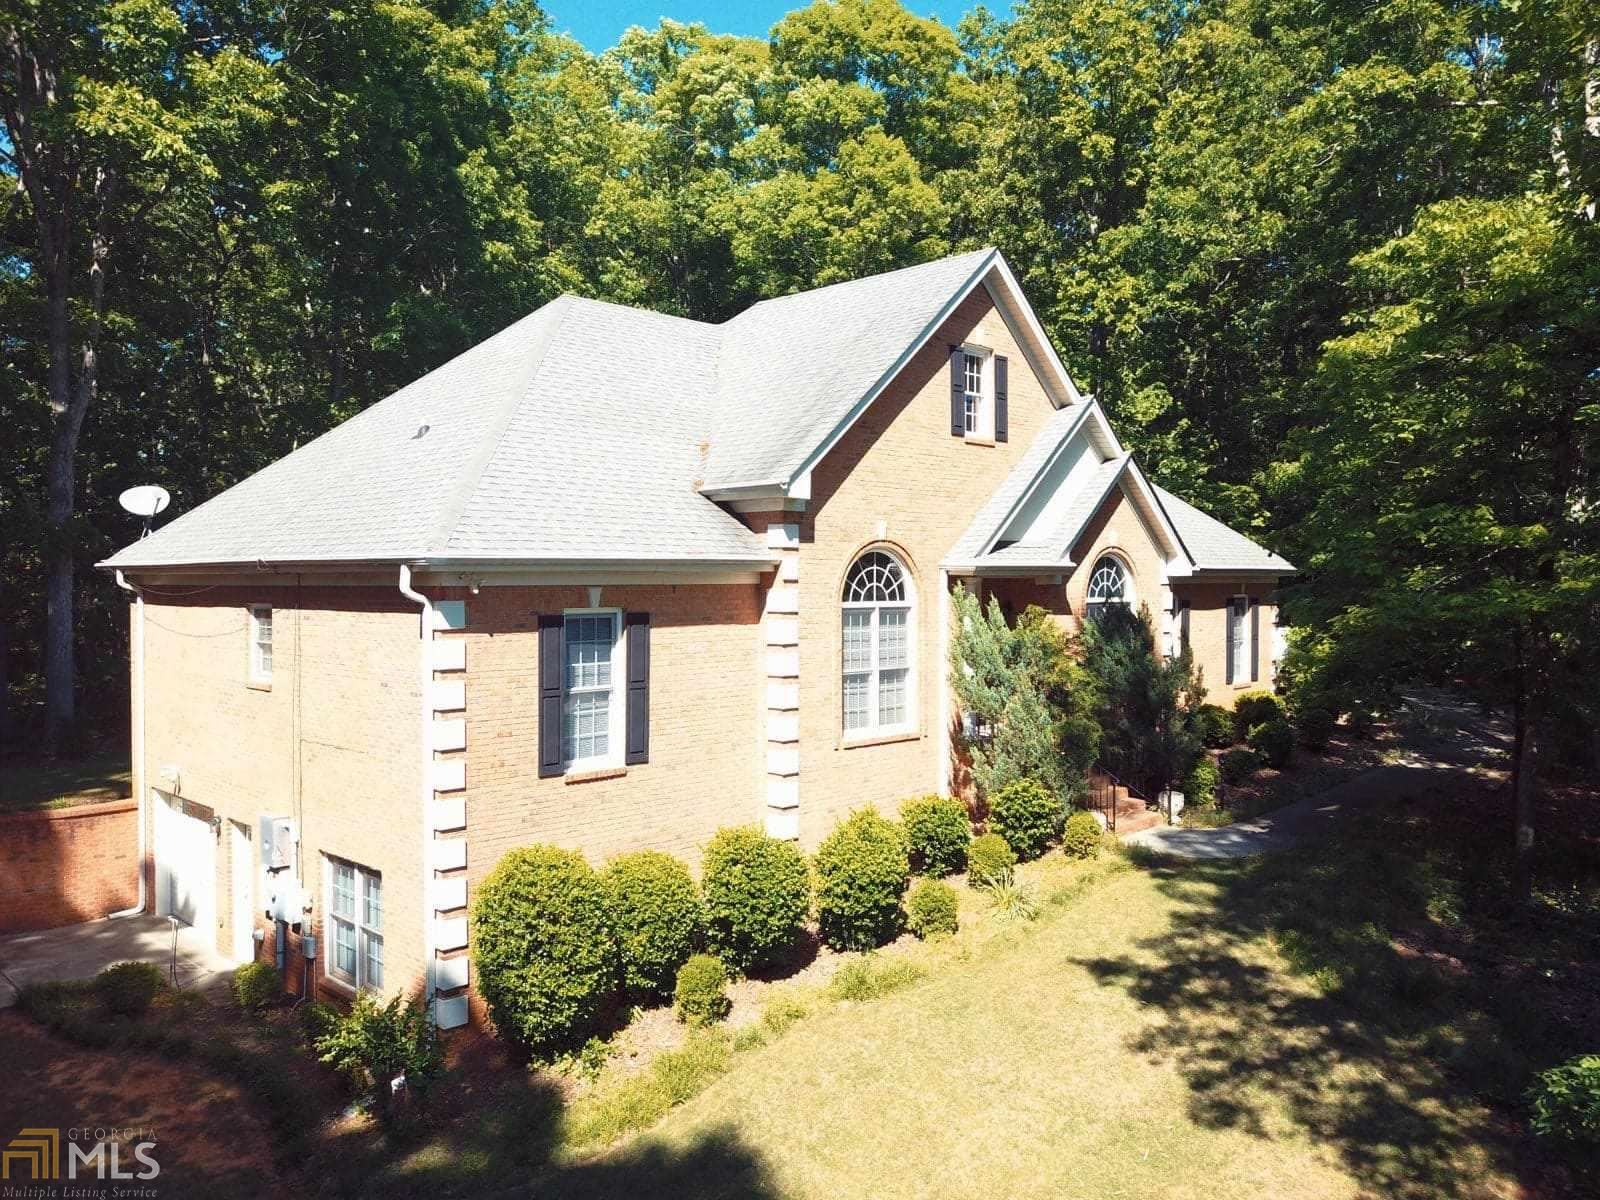 1021 Laurel Ridge Dr, McDonough, GA 30252 - #: 8780211